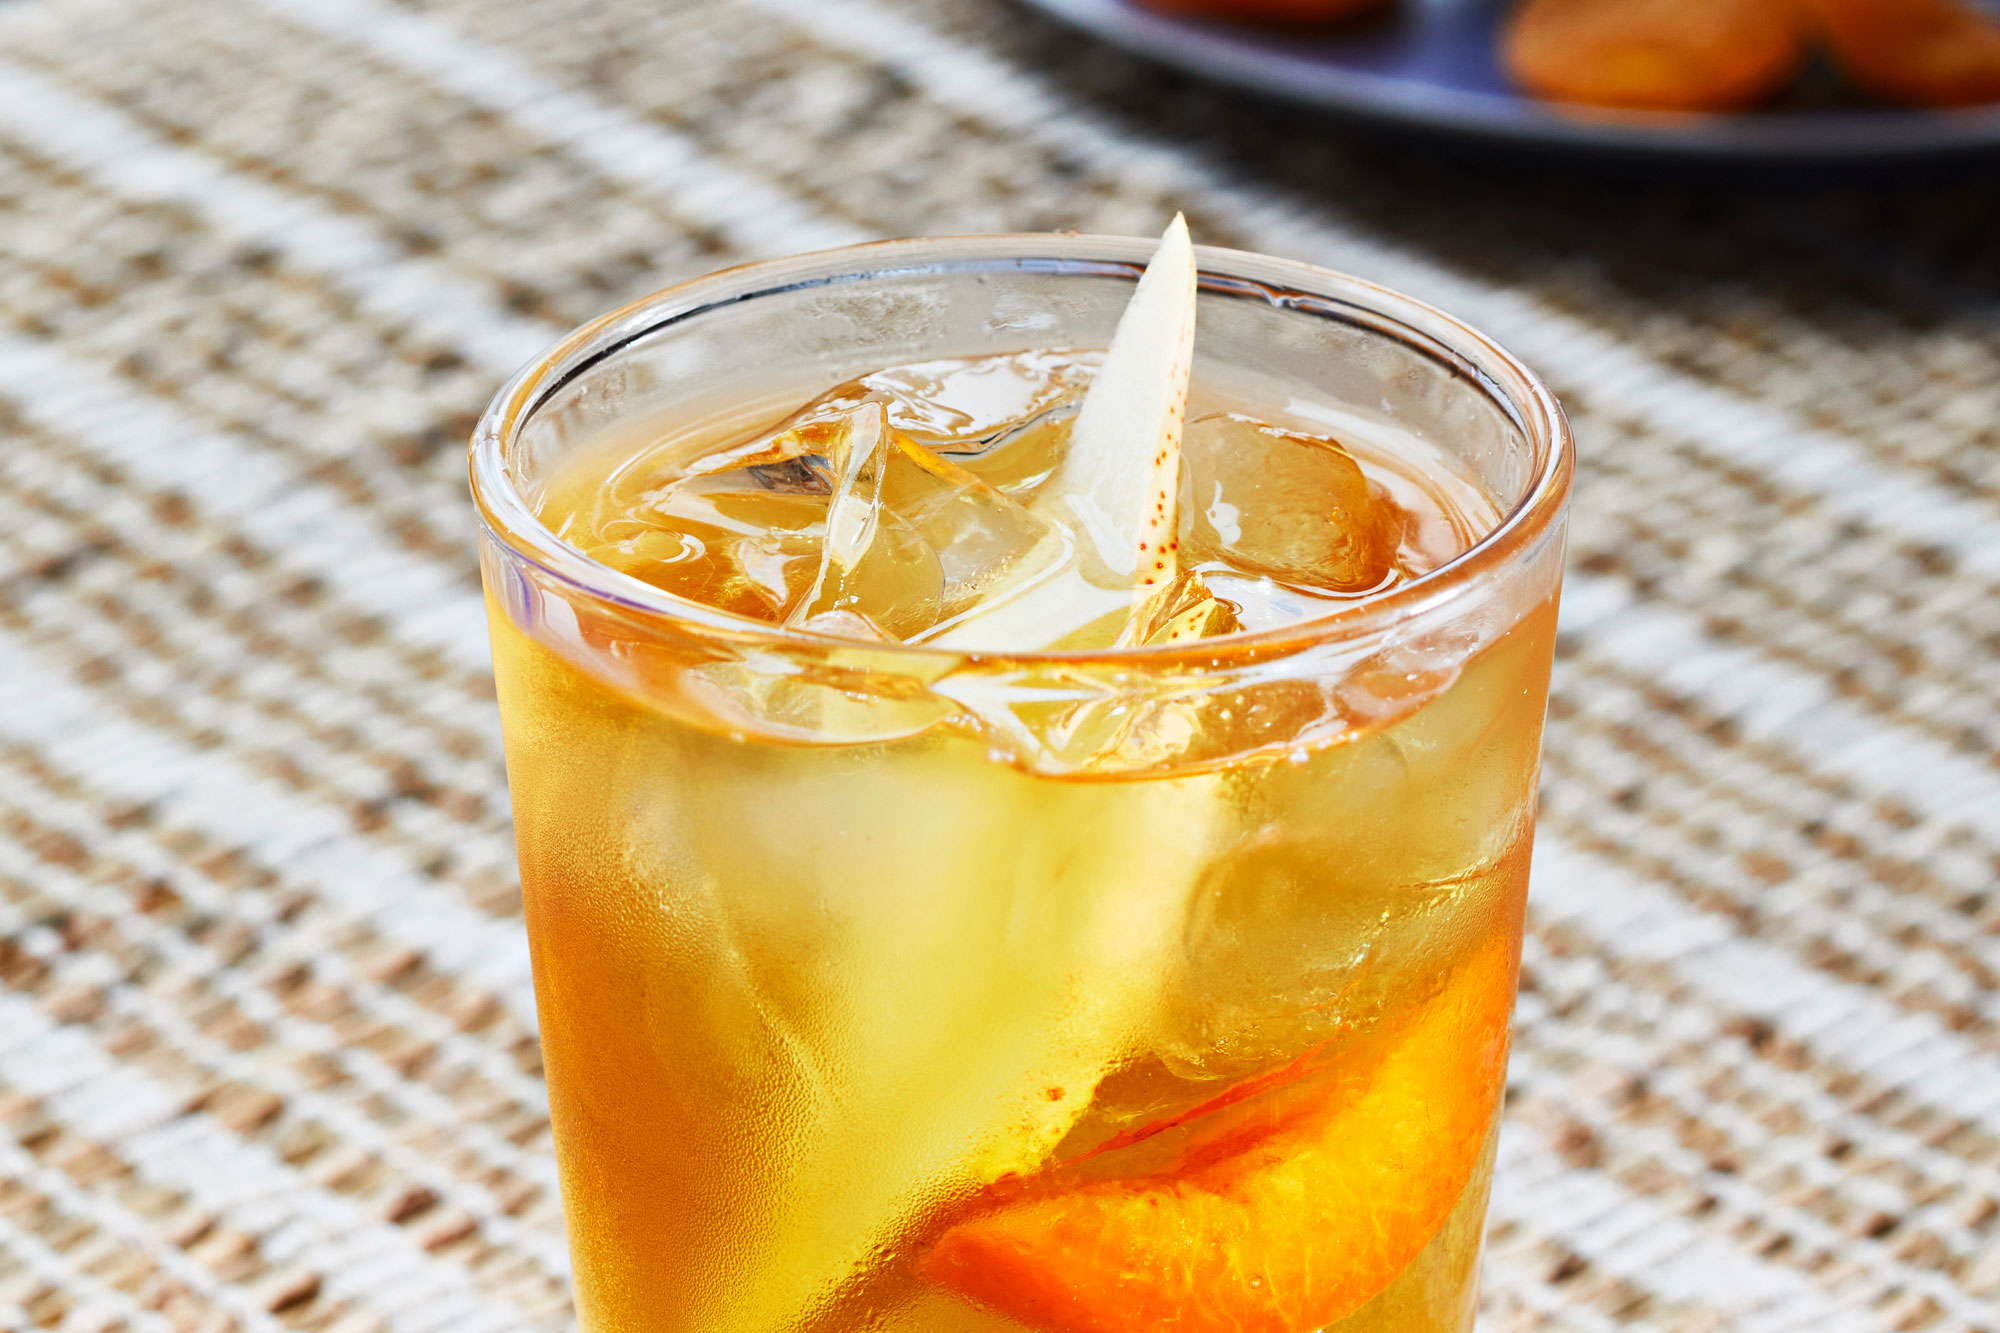 Pear Apricot Rum cooler